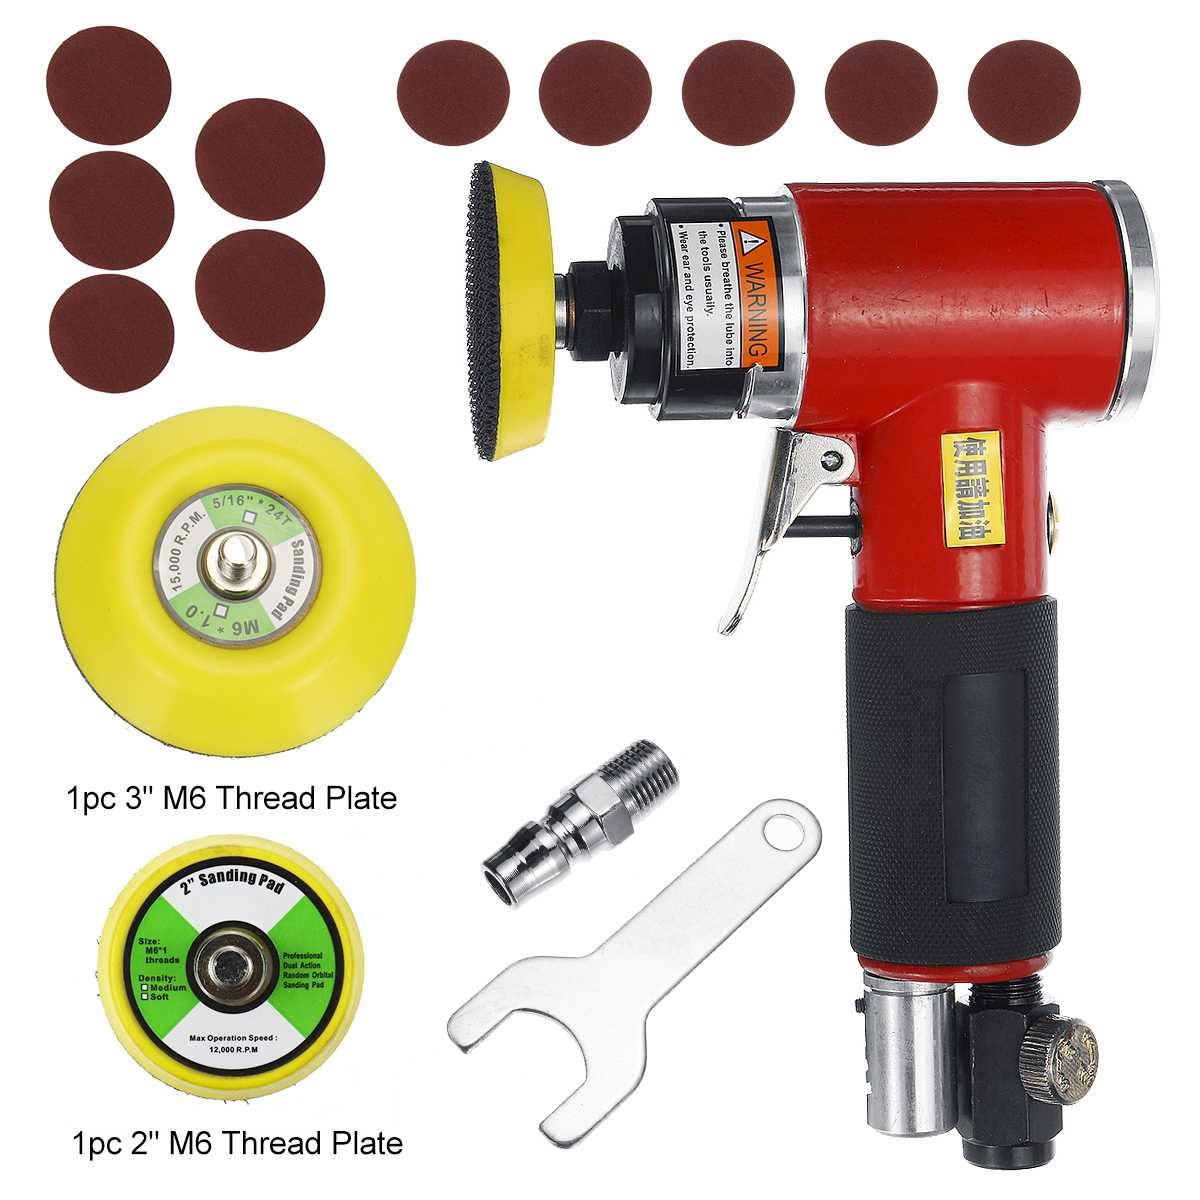 5 Inch High-speed Mini Pneumatic Sanding Machine Air Sander With Push Switch And Sanding Pad For Polishing Grinding Tools